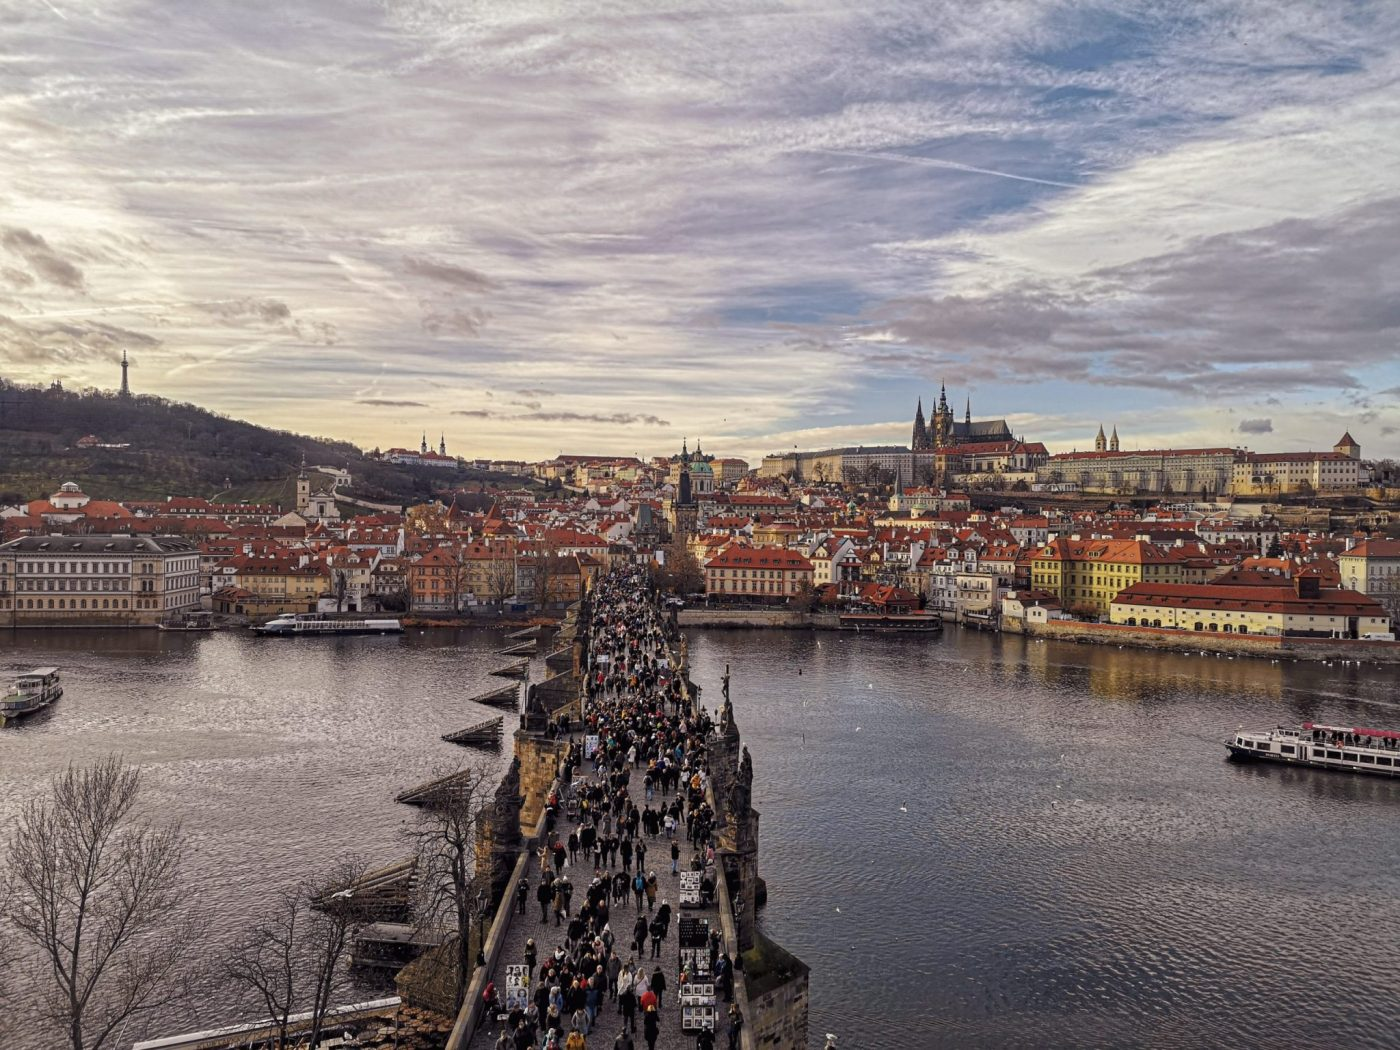 The Charles Bridge, which Lucy and Matt saw whilst travelling as a couple